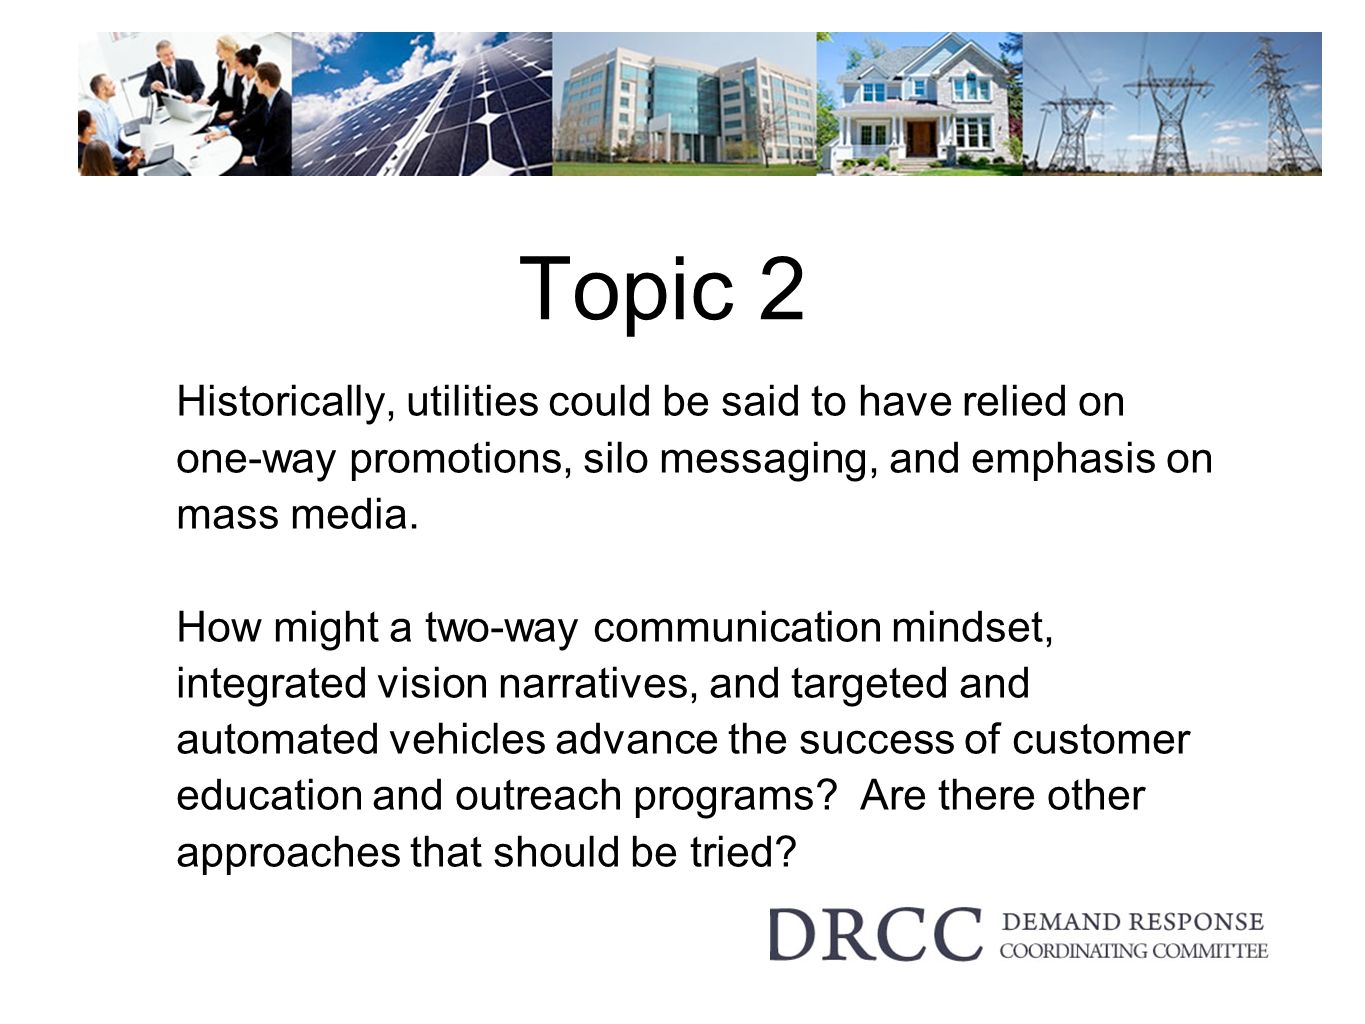 Topic 2 Historically, utilities could be said to have relied on one-way promotions, silo messaging, and emphasis on mass media.